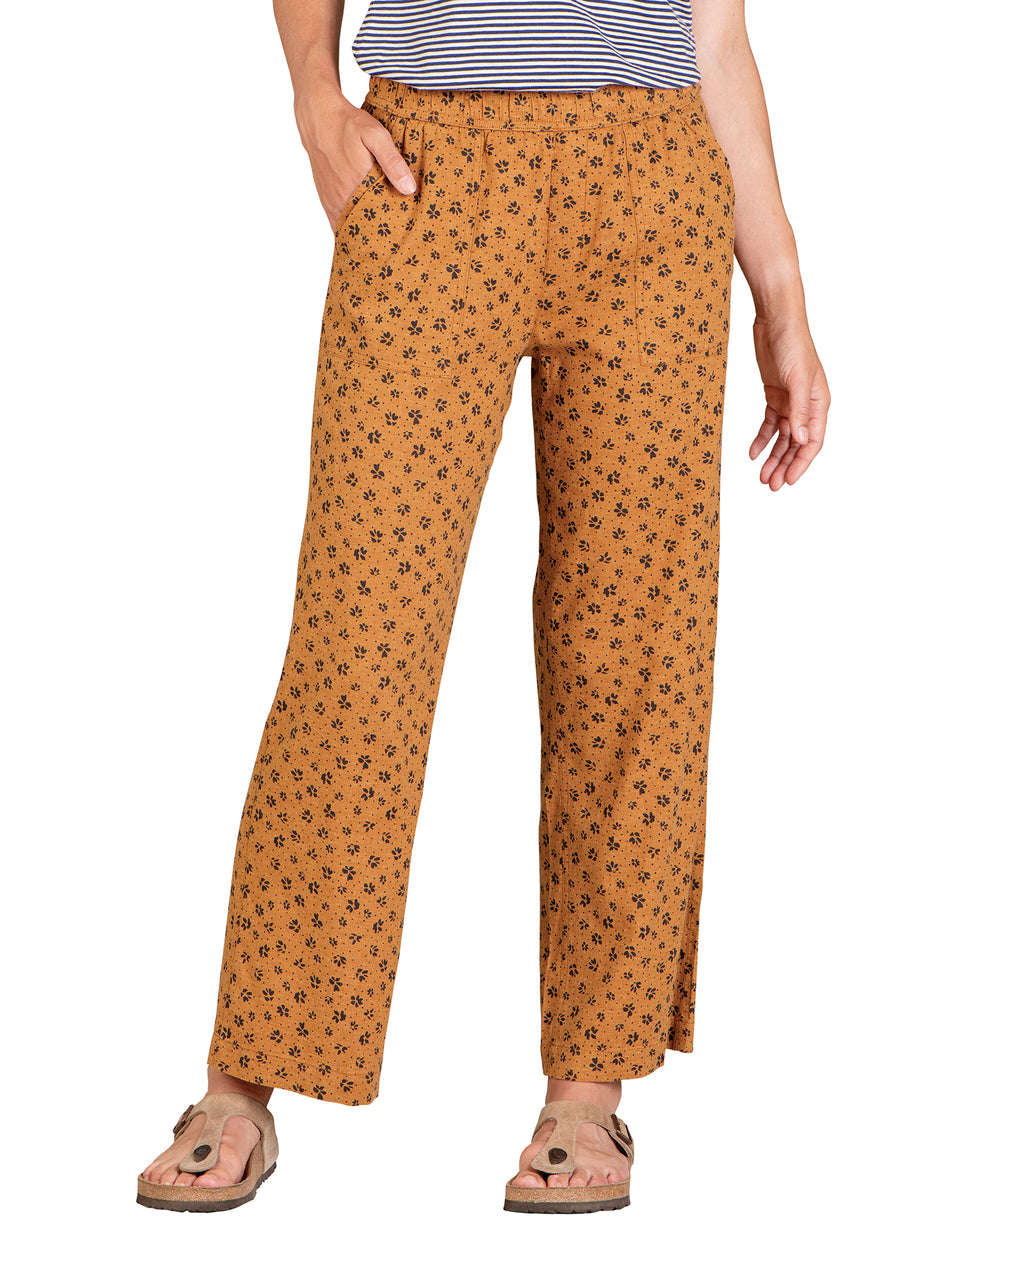 Elastic Waistband. Semi-Wide Length Pant.